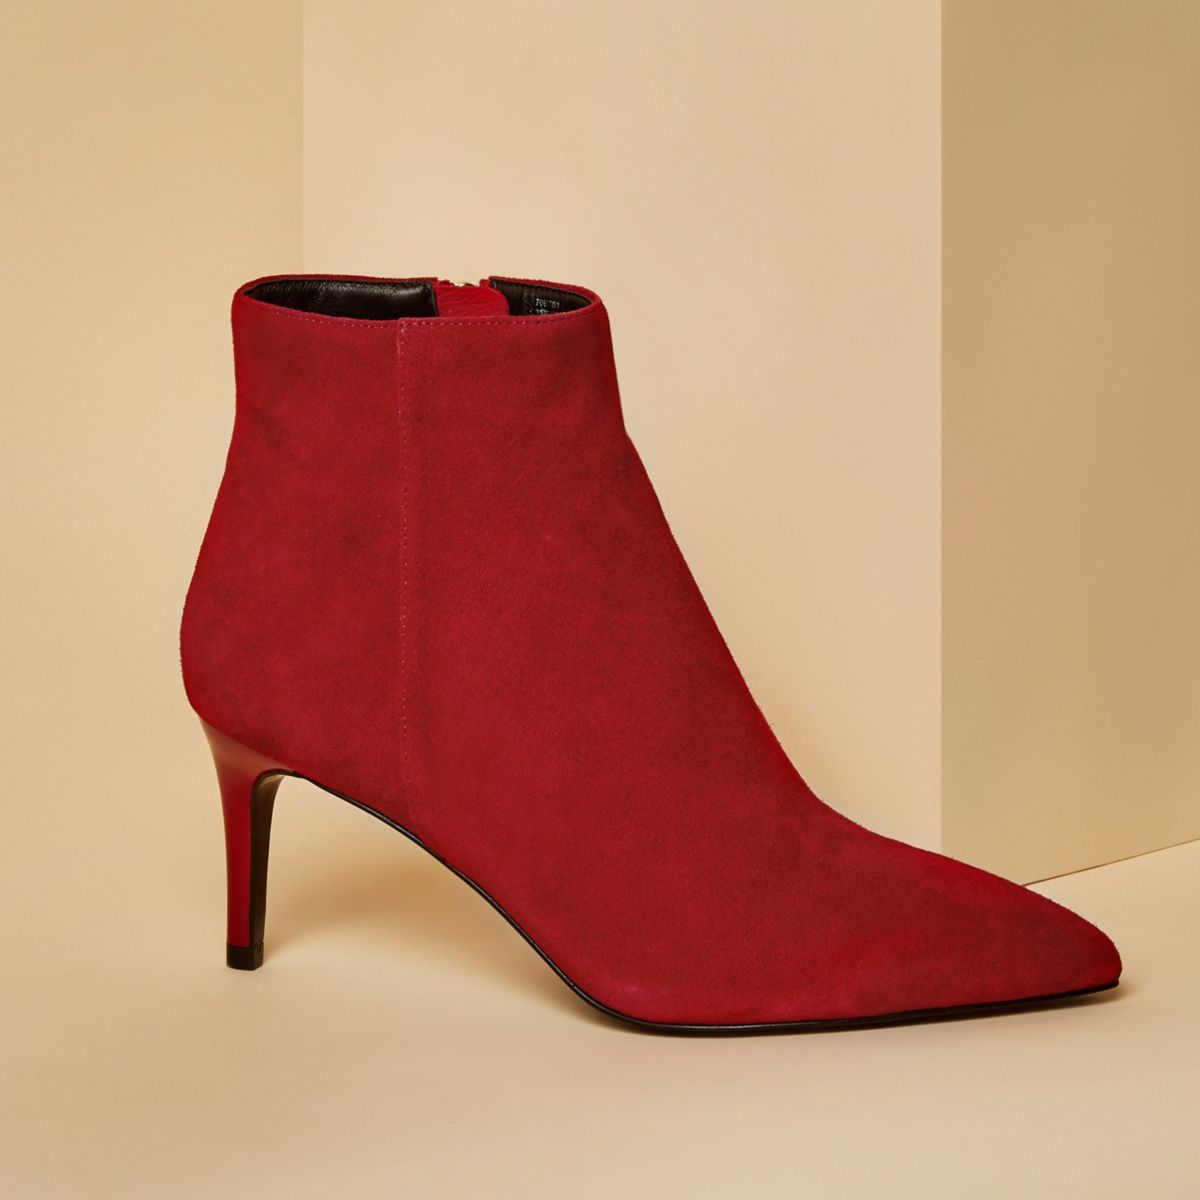 Cool Emporio Armani Womens Ankle Boots - Red Suede | EBay